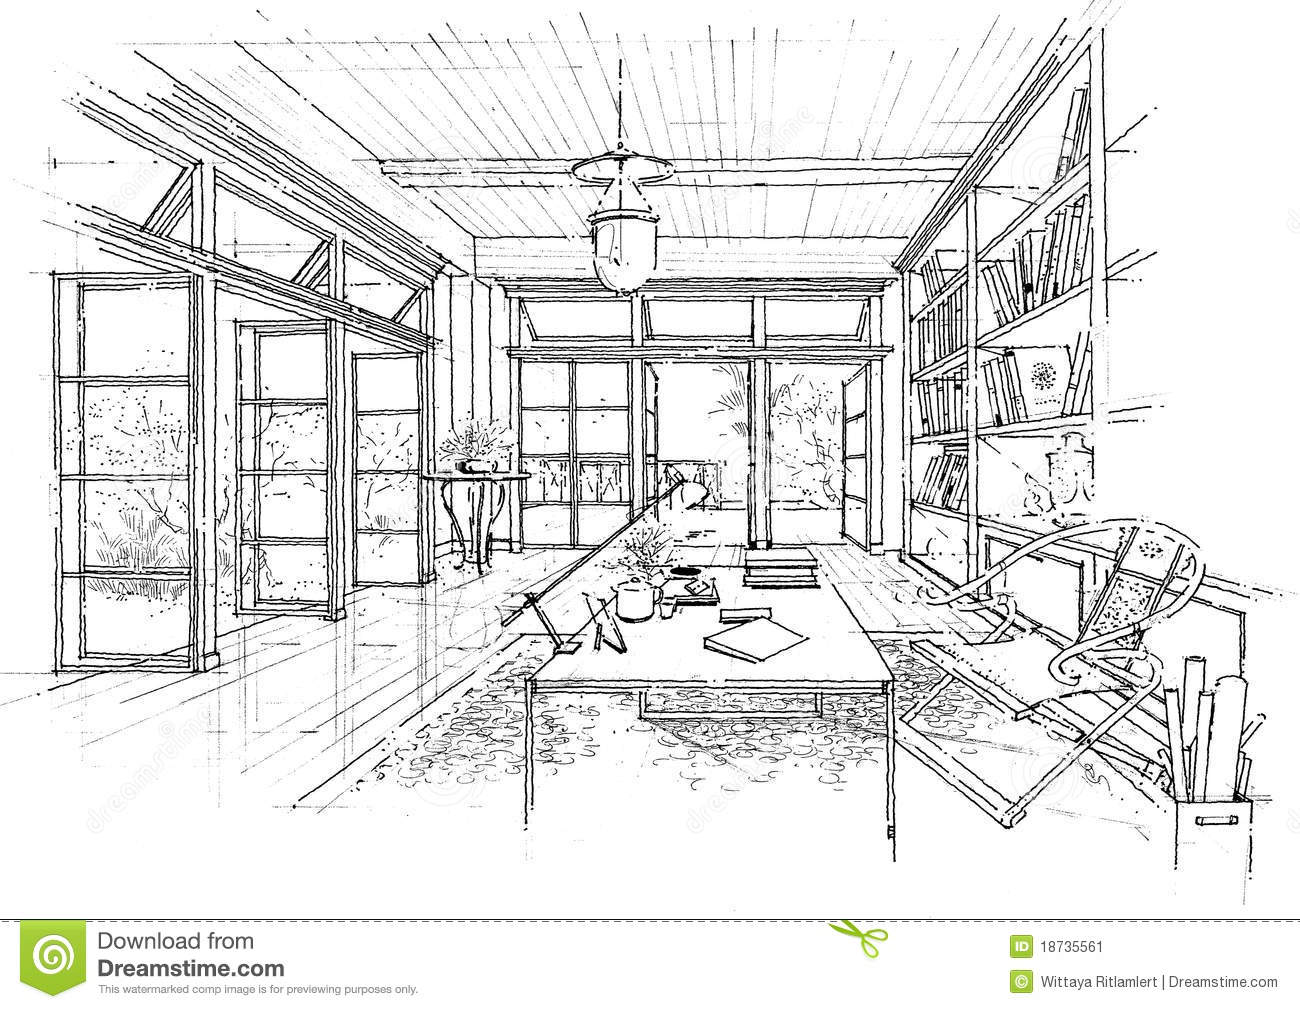 architecture art construction decorate design fashion image interior landscape sketch